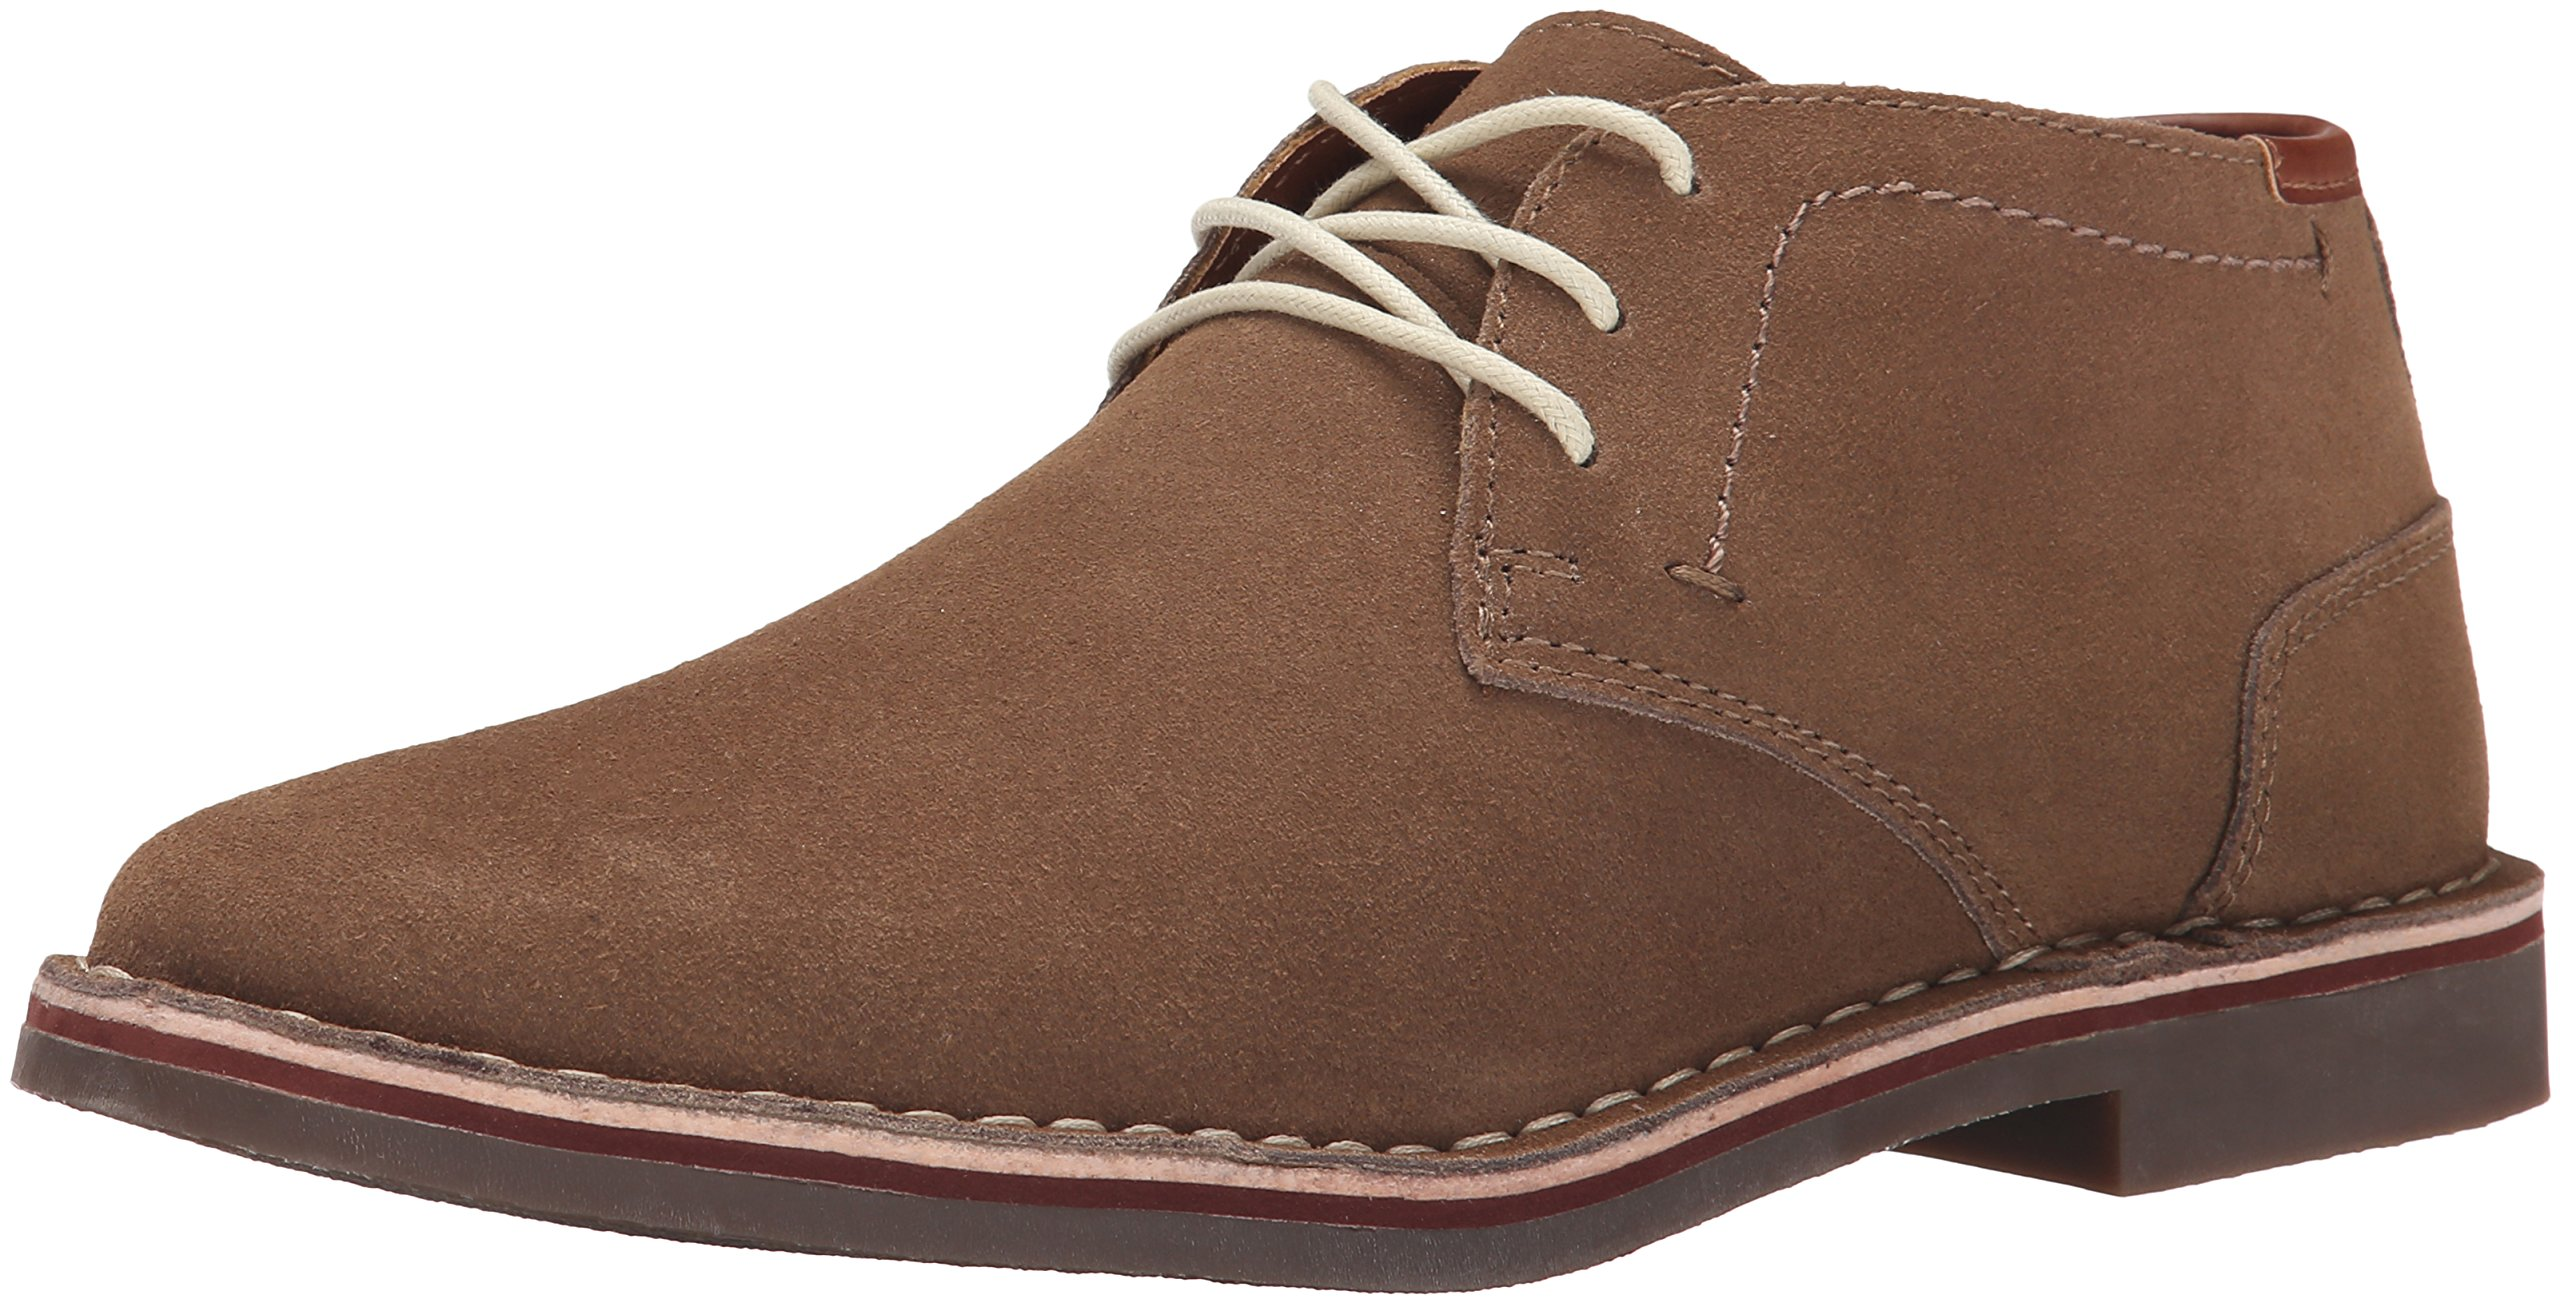 Kenneth Cole REACTION Men's Desert Sun SU Chukka Boot, Taupe Suede, 10 M US